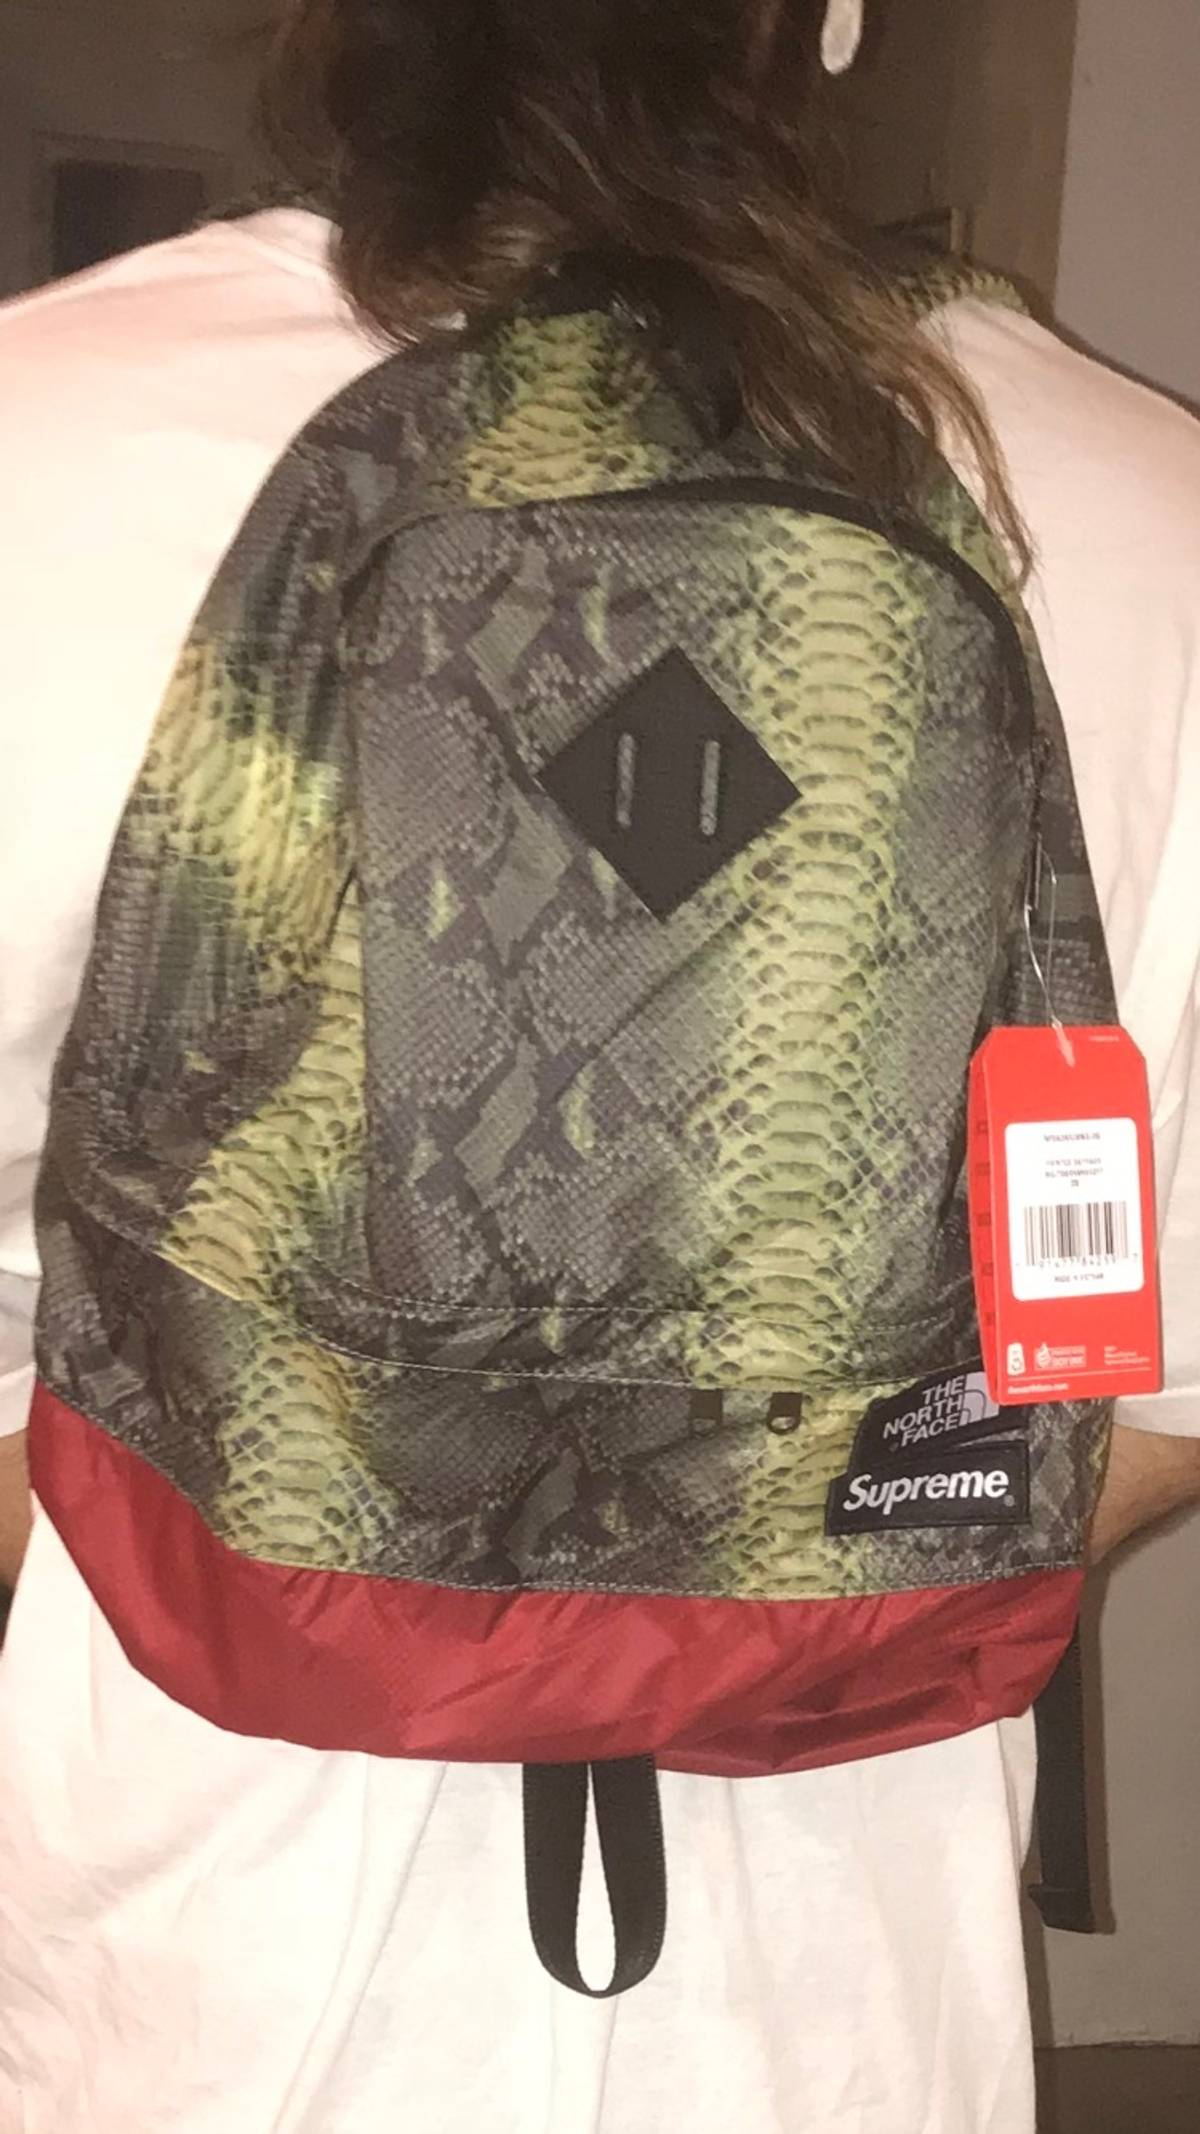 10bbcd8db Supreme × The North Face Supreme X The North Face Snake Skin Backpack Green  Size One Size $130